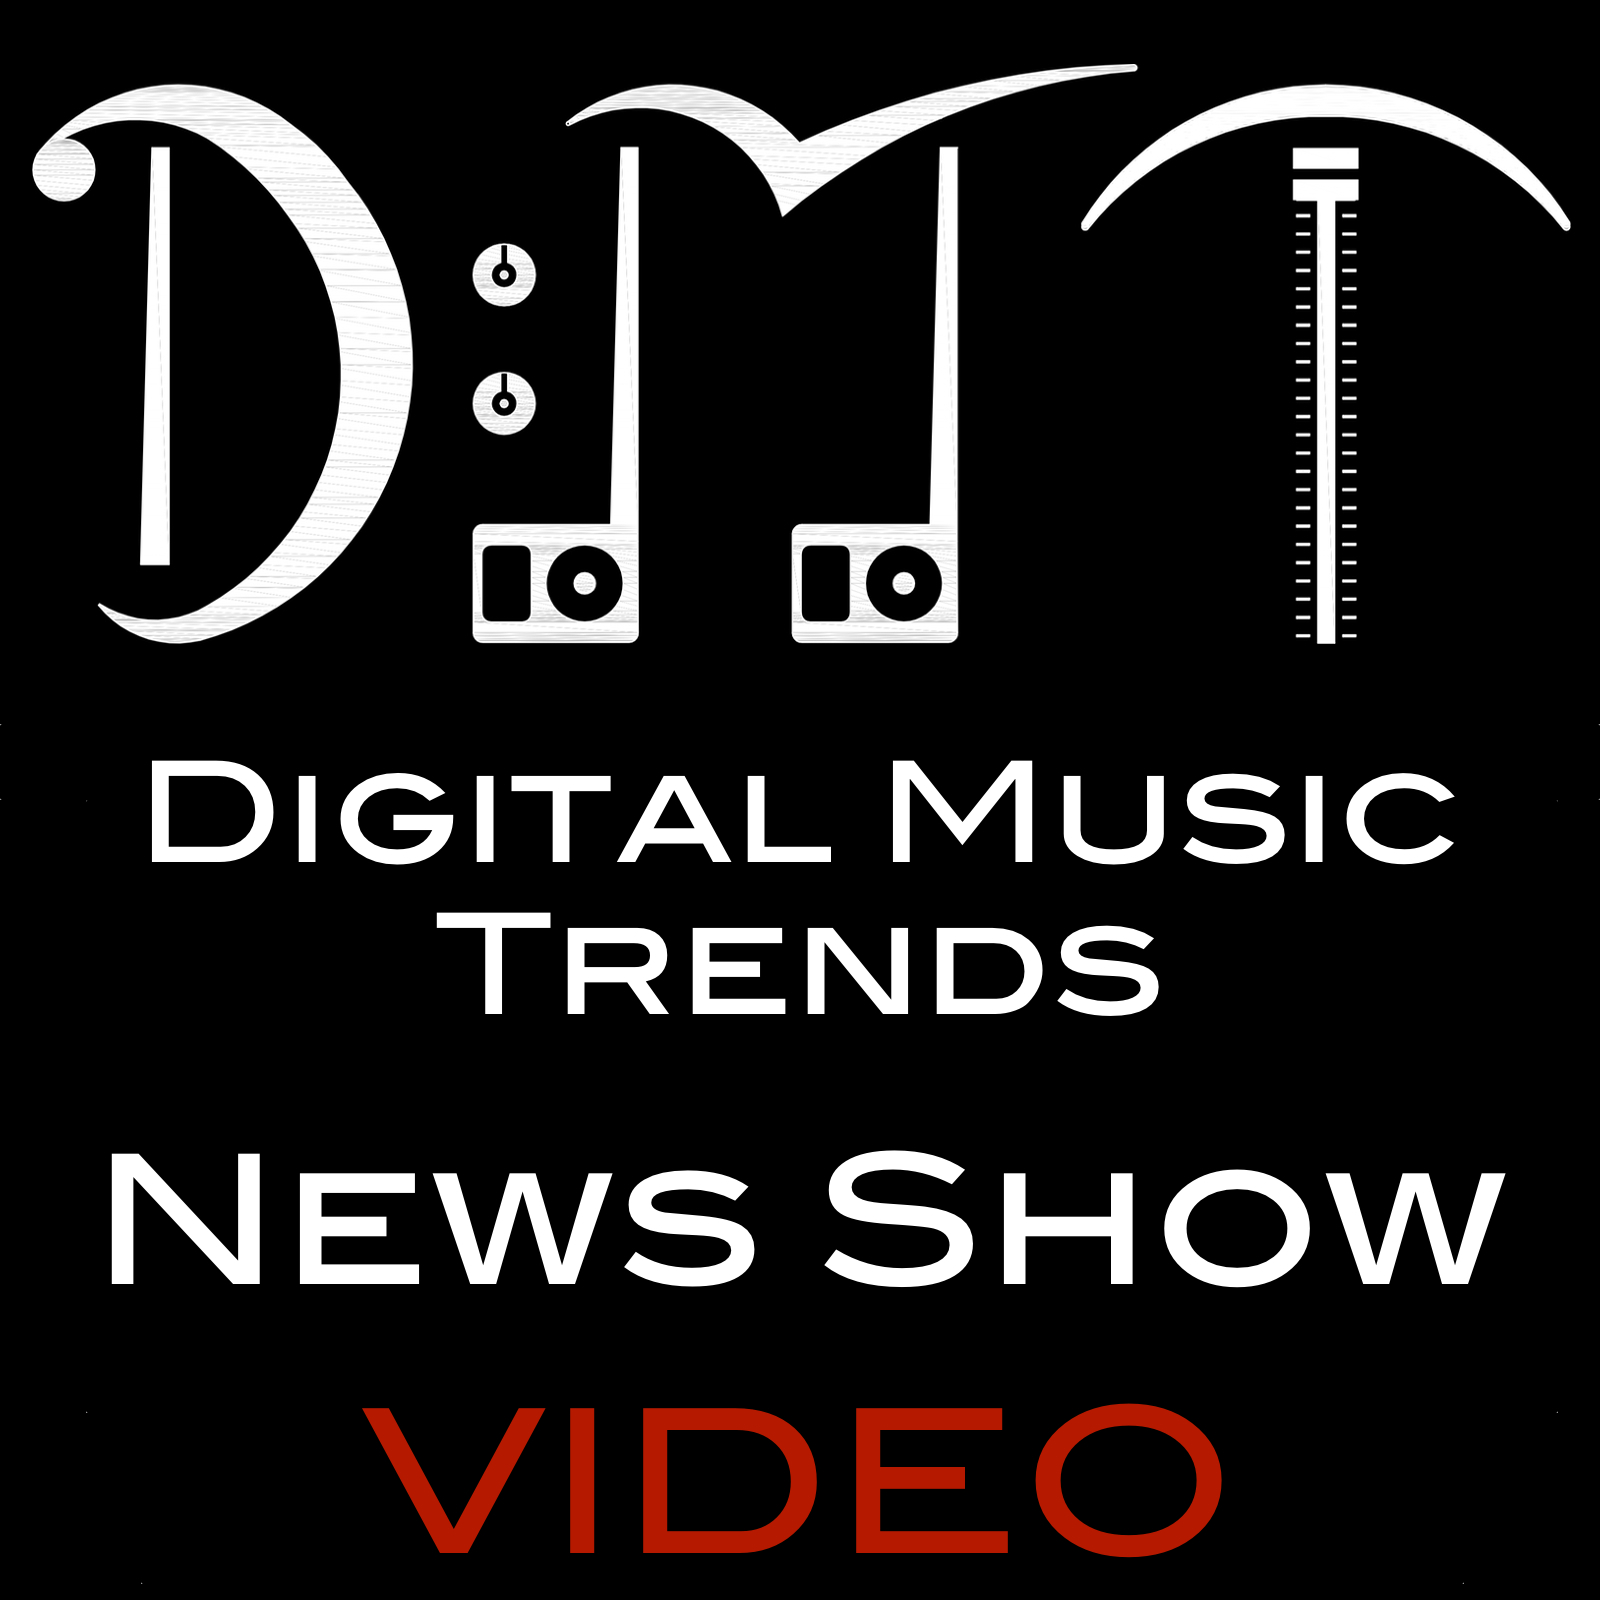 Digital Music Trends Video